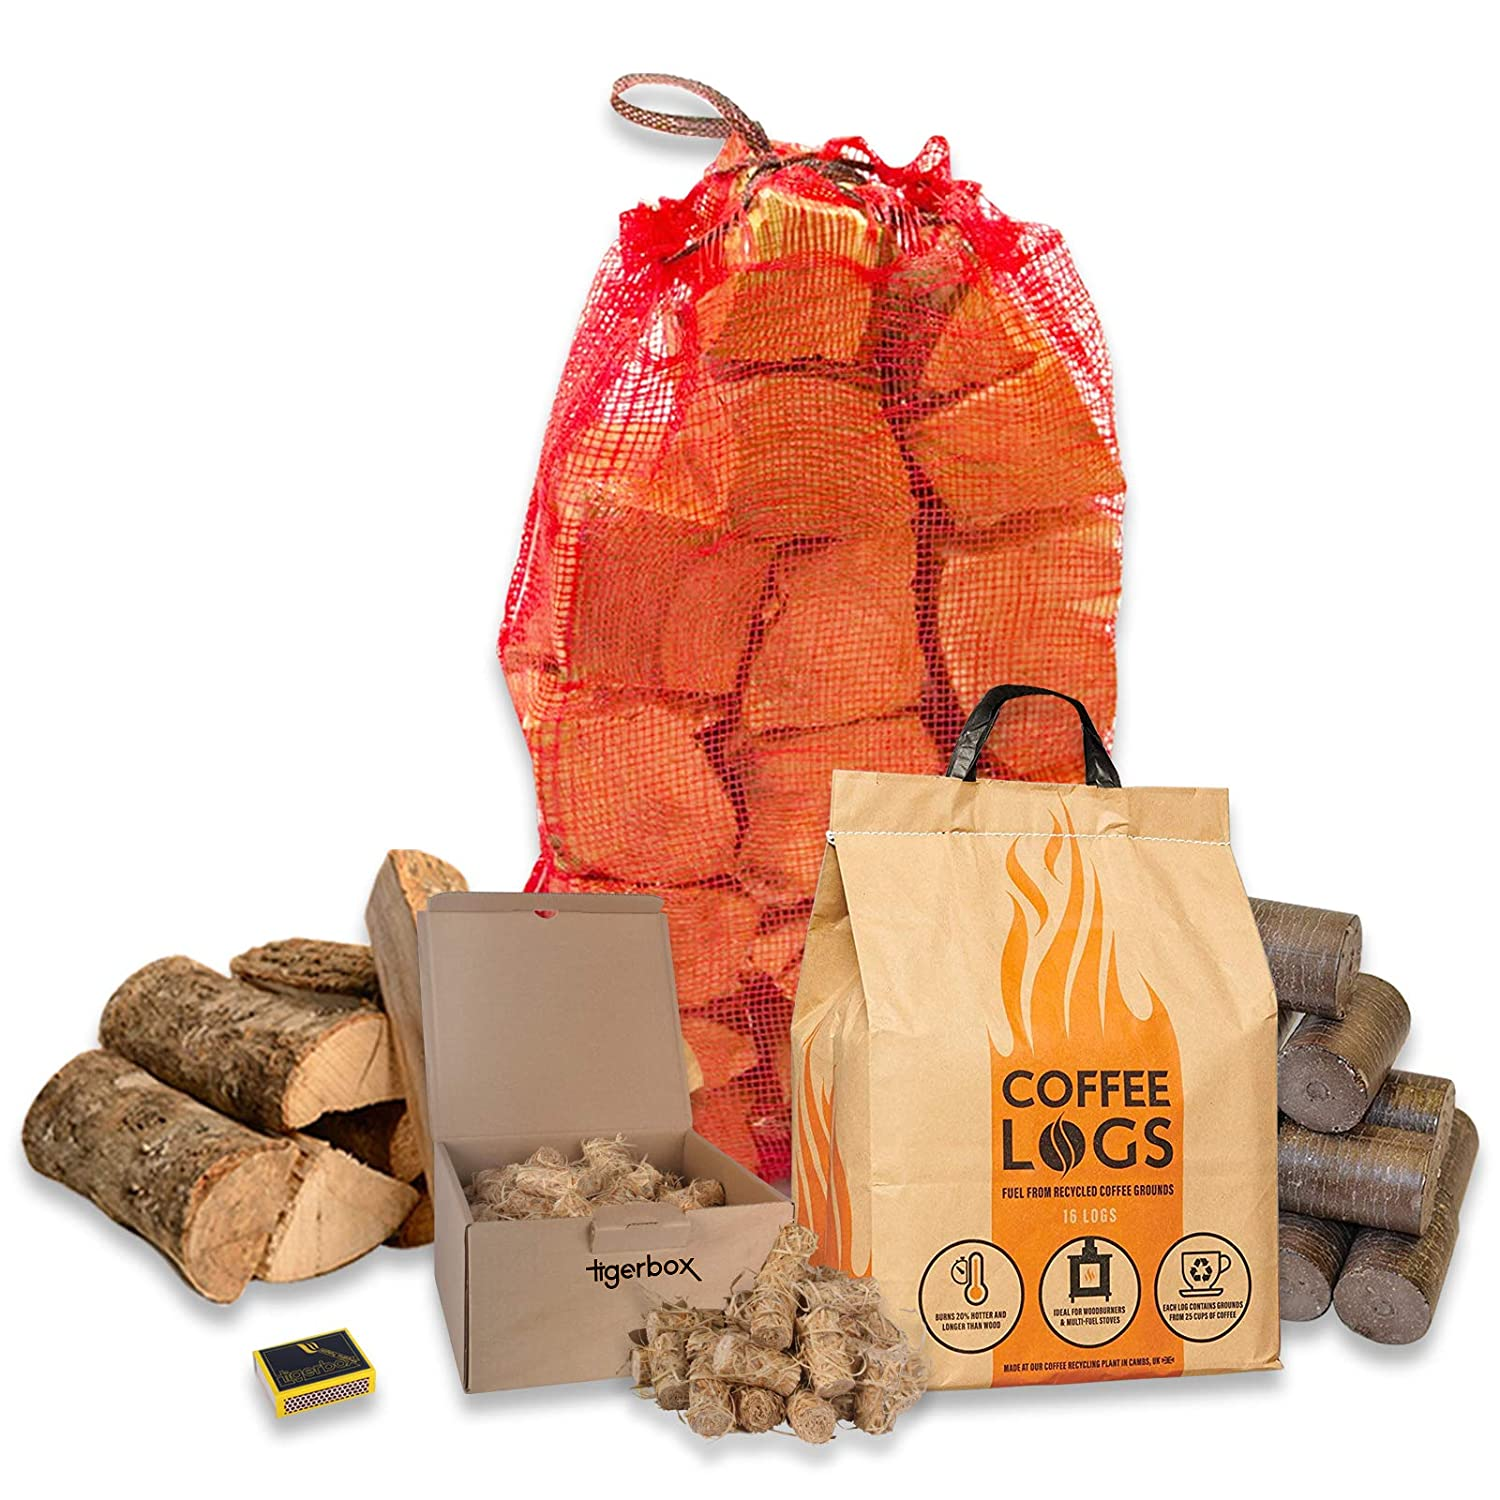 16 Coffee Logs Carbon Neutral Extra Hot Solid Fuel, 15KG of Kiln Dried Hard Wood, Natural Wood Wool Eco Firelighters & Tigerbox Safety Matches.